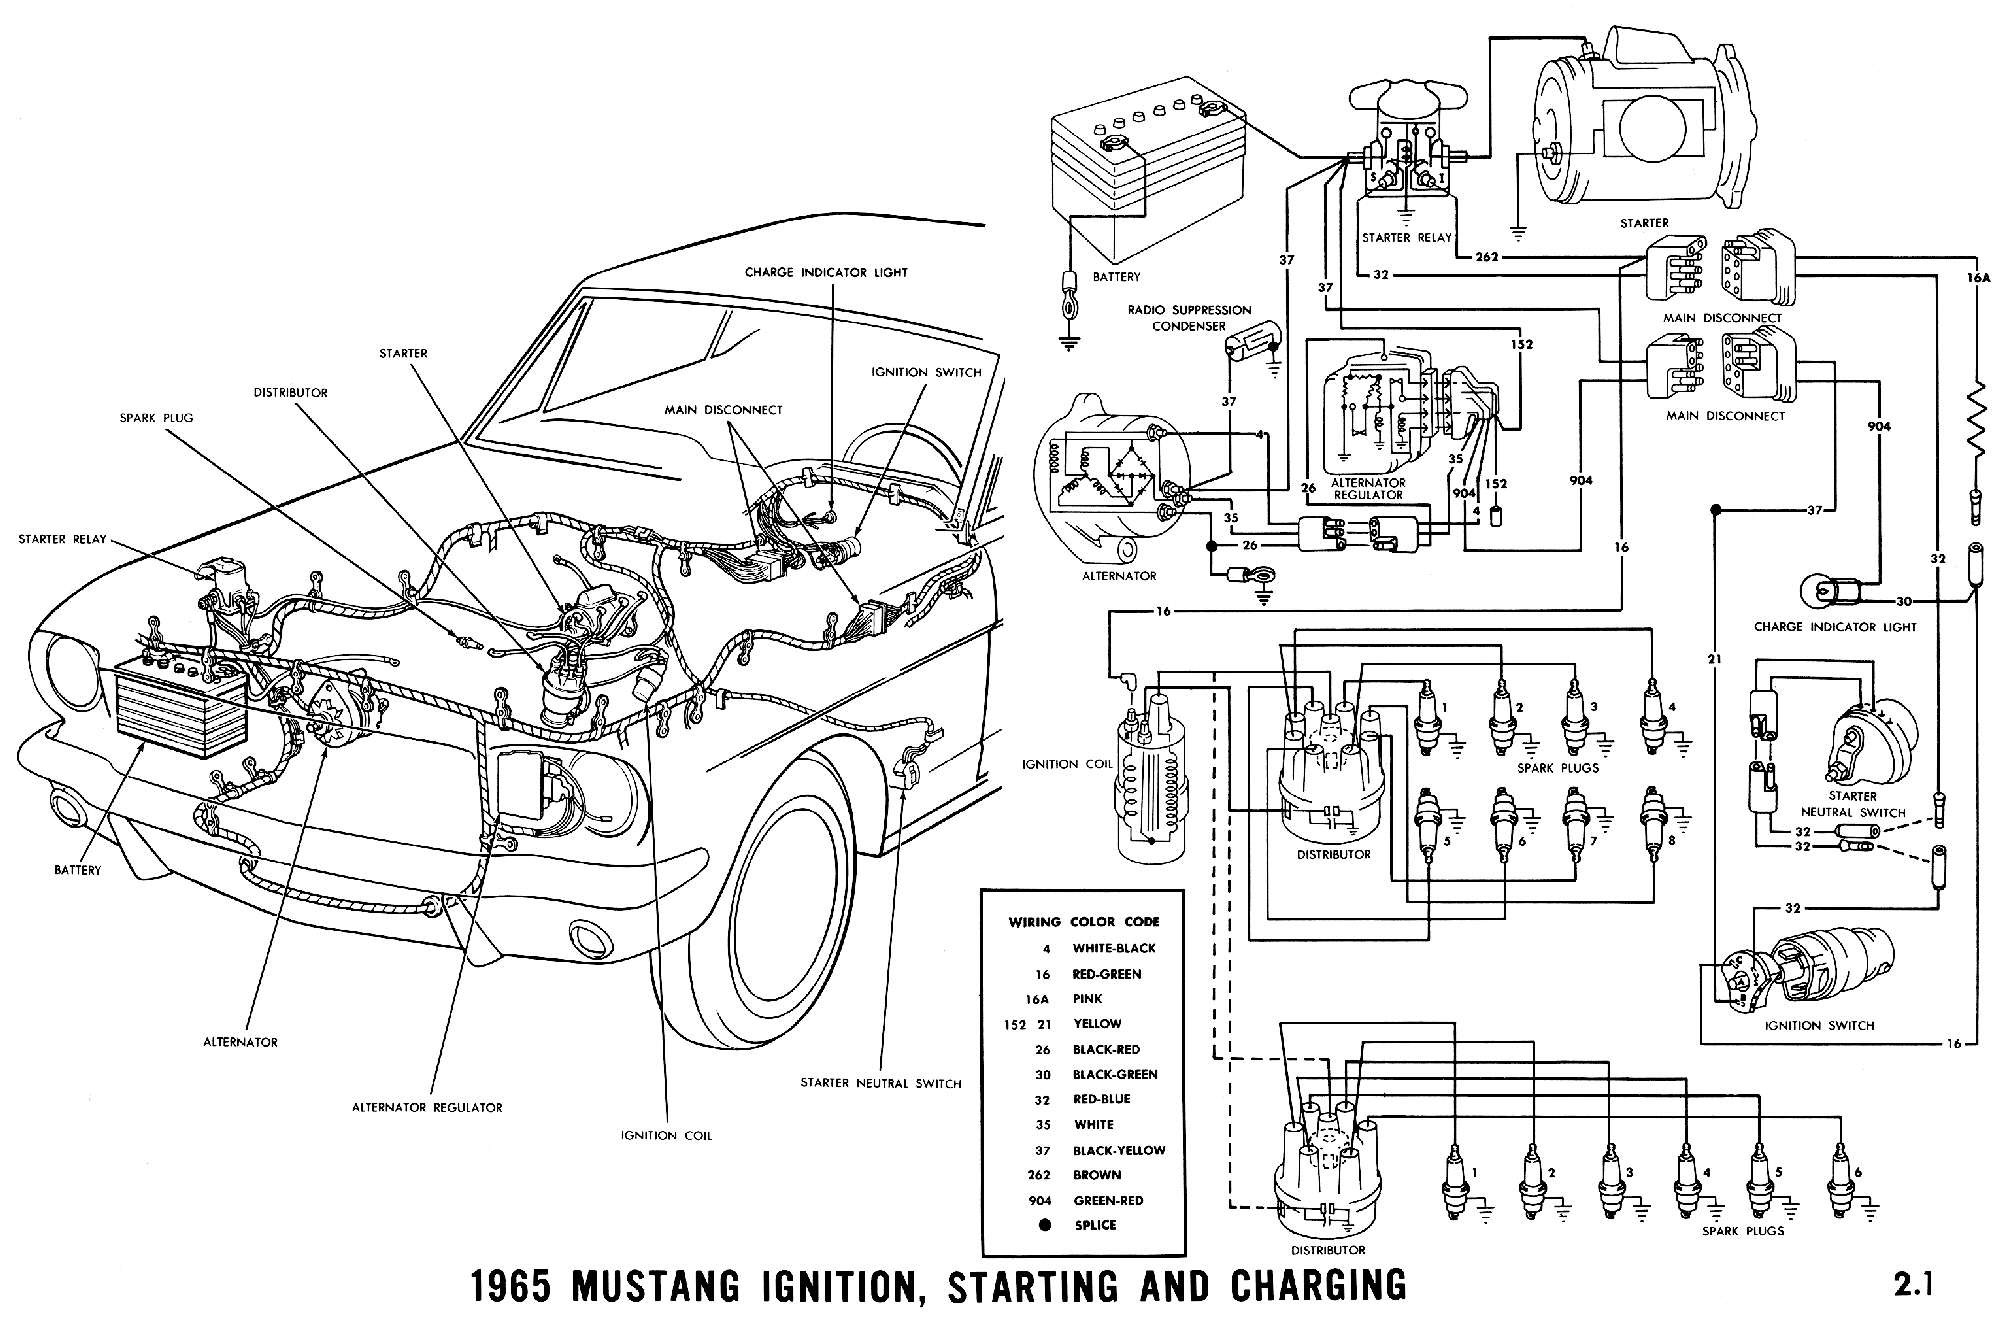 Engine Internals Diagram 2015 Mustang Engine Diagram Engine Car Parts and Ponent Diagram Of Engine Internals Diagram